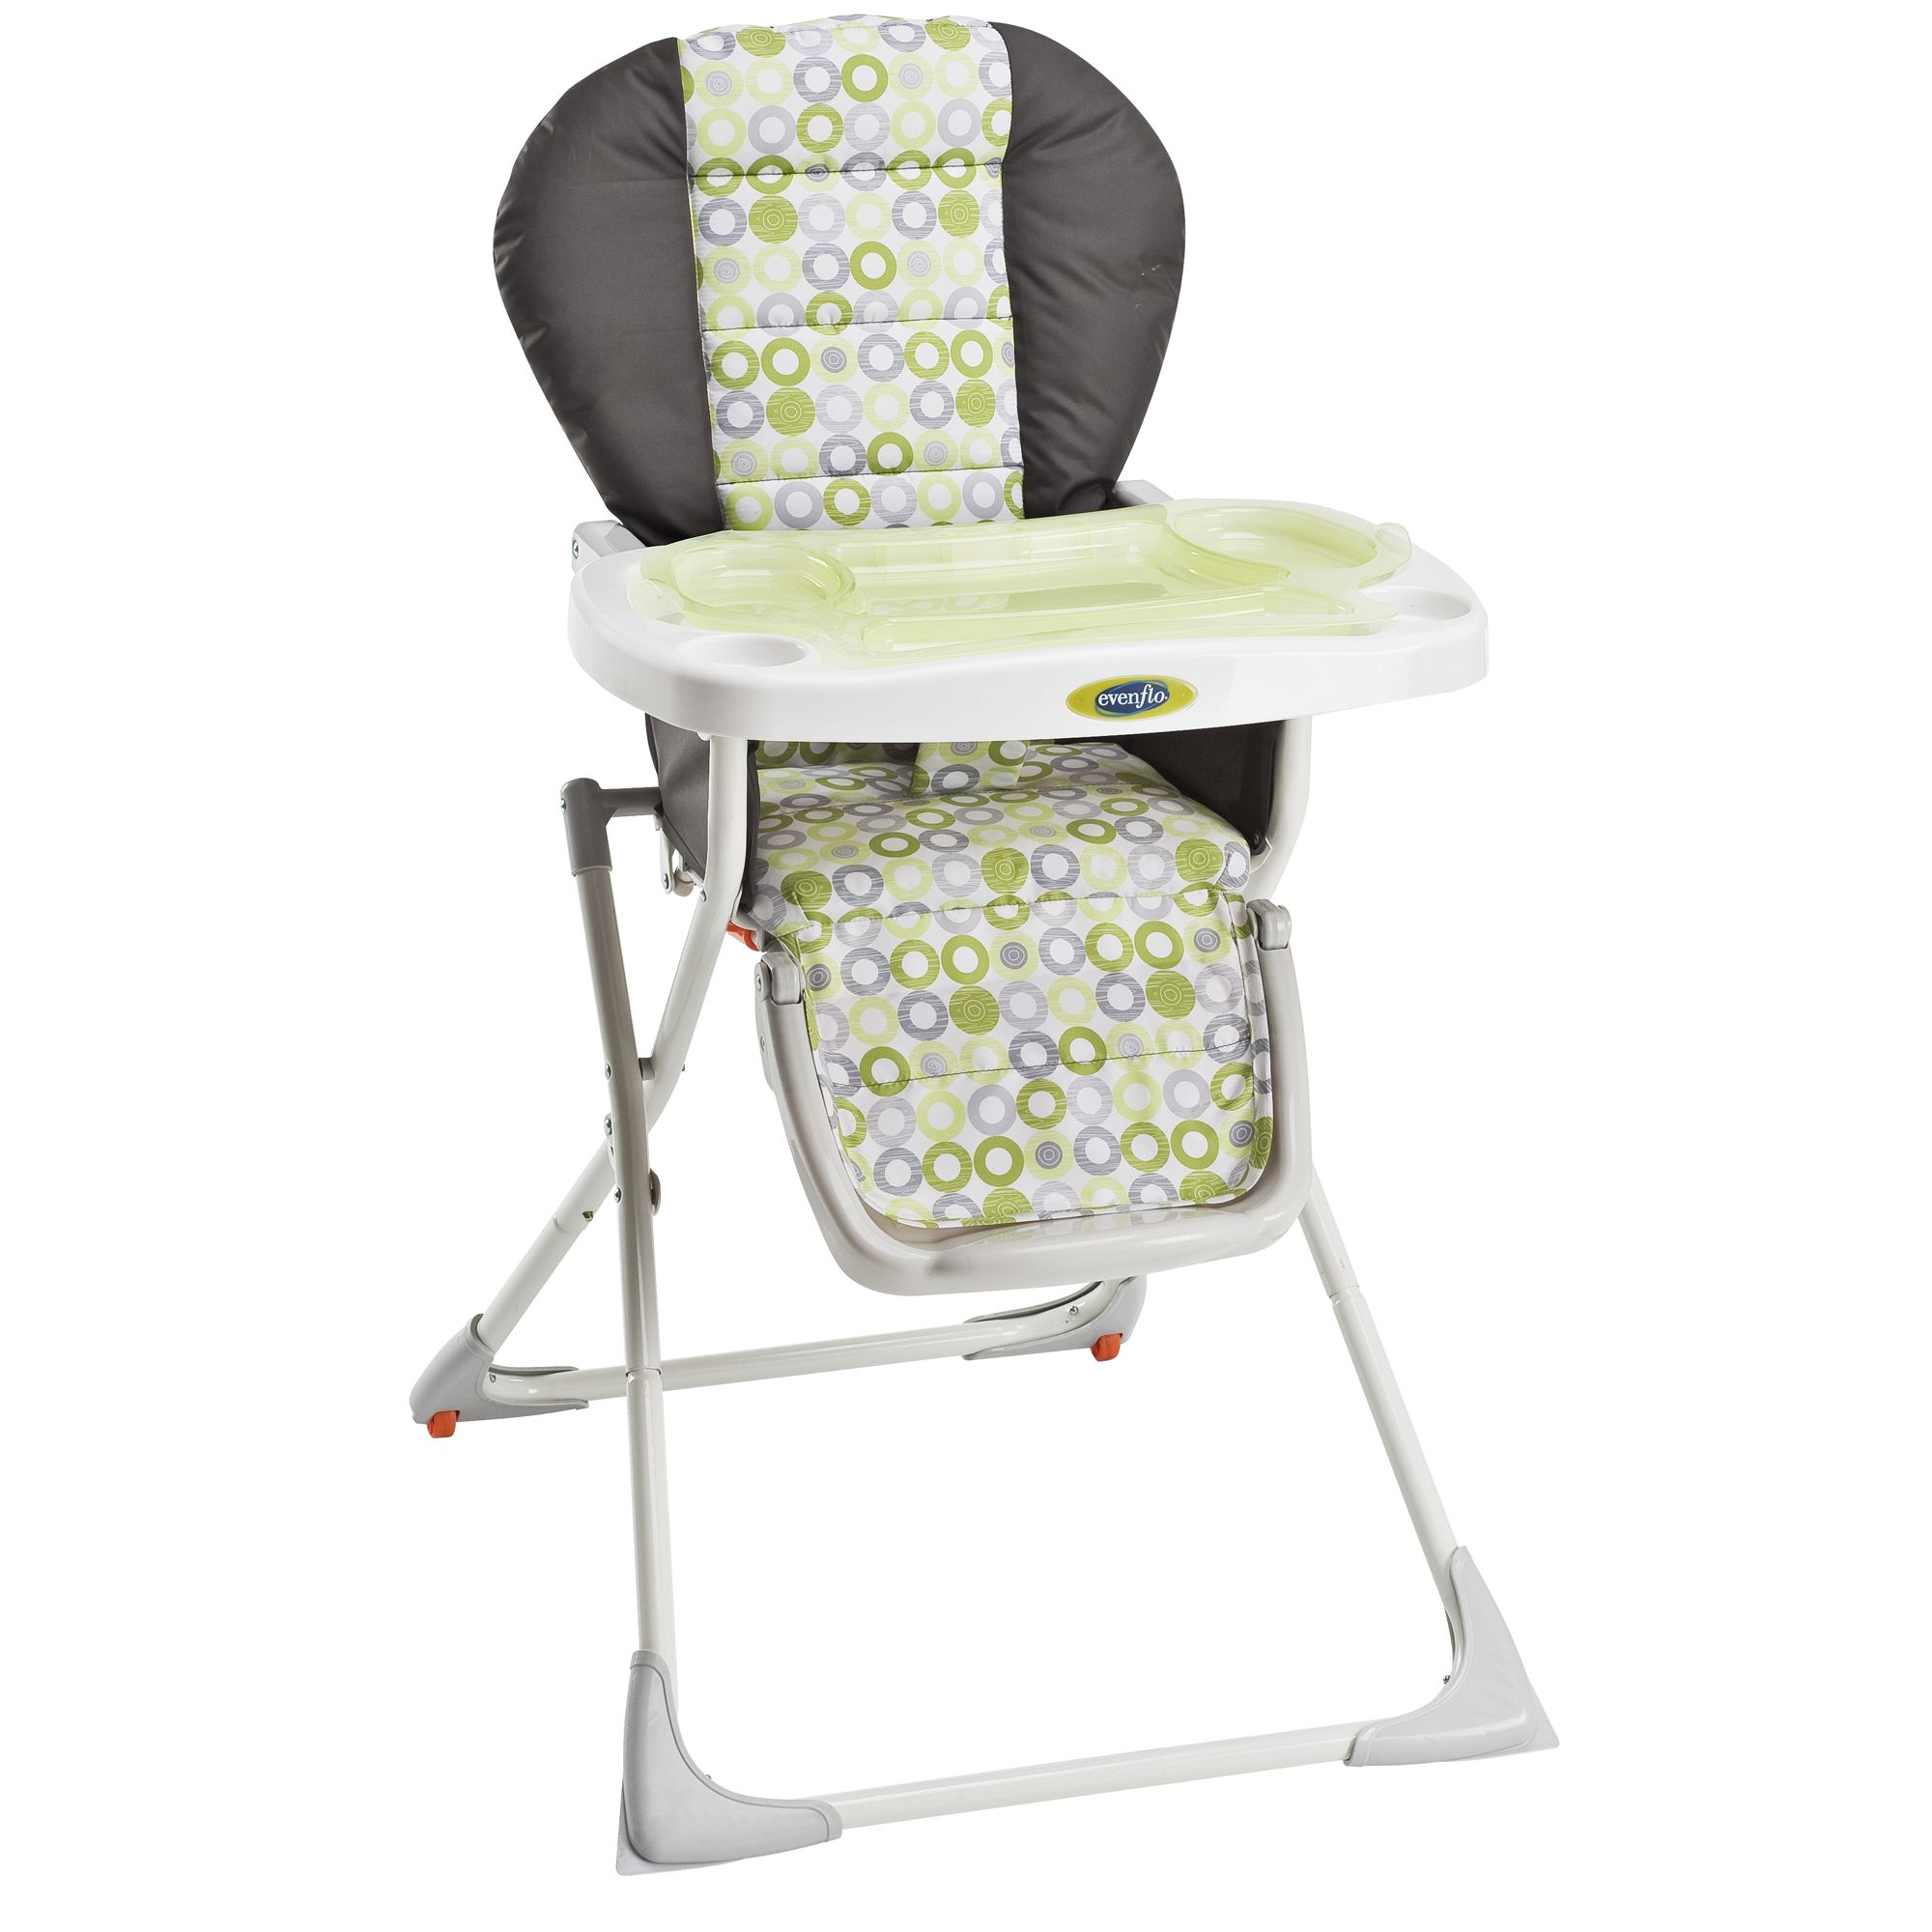 Evenflo Compact Fold High Chair Evenflo Snap High Chair Mesa Green